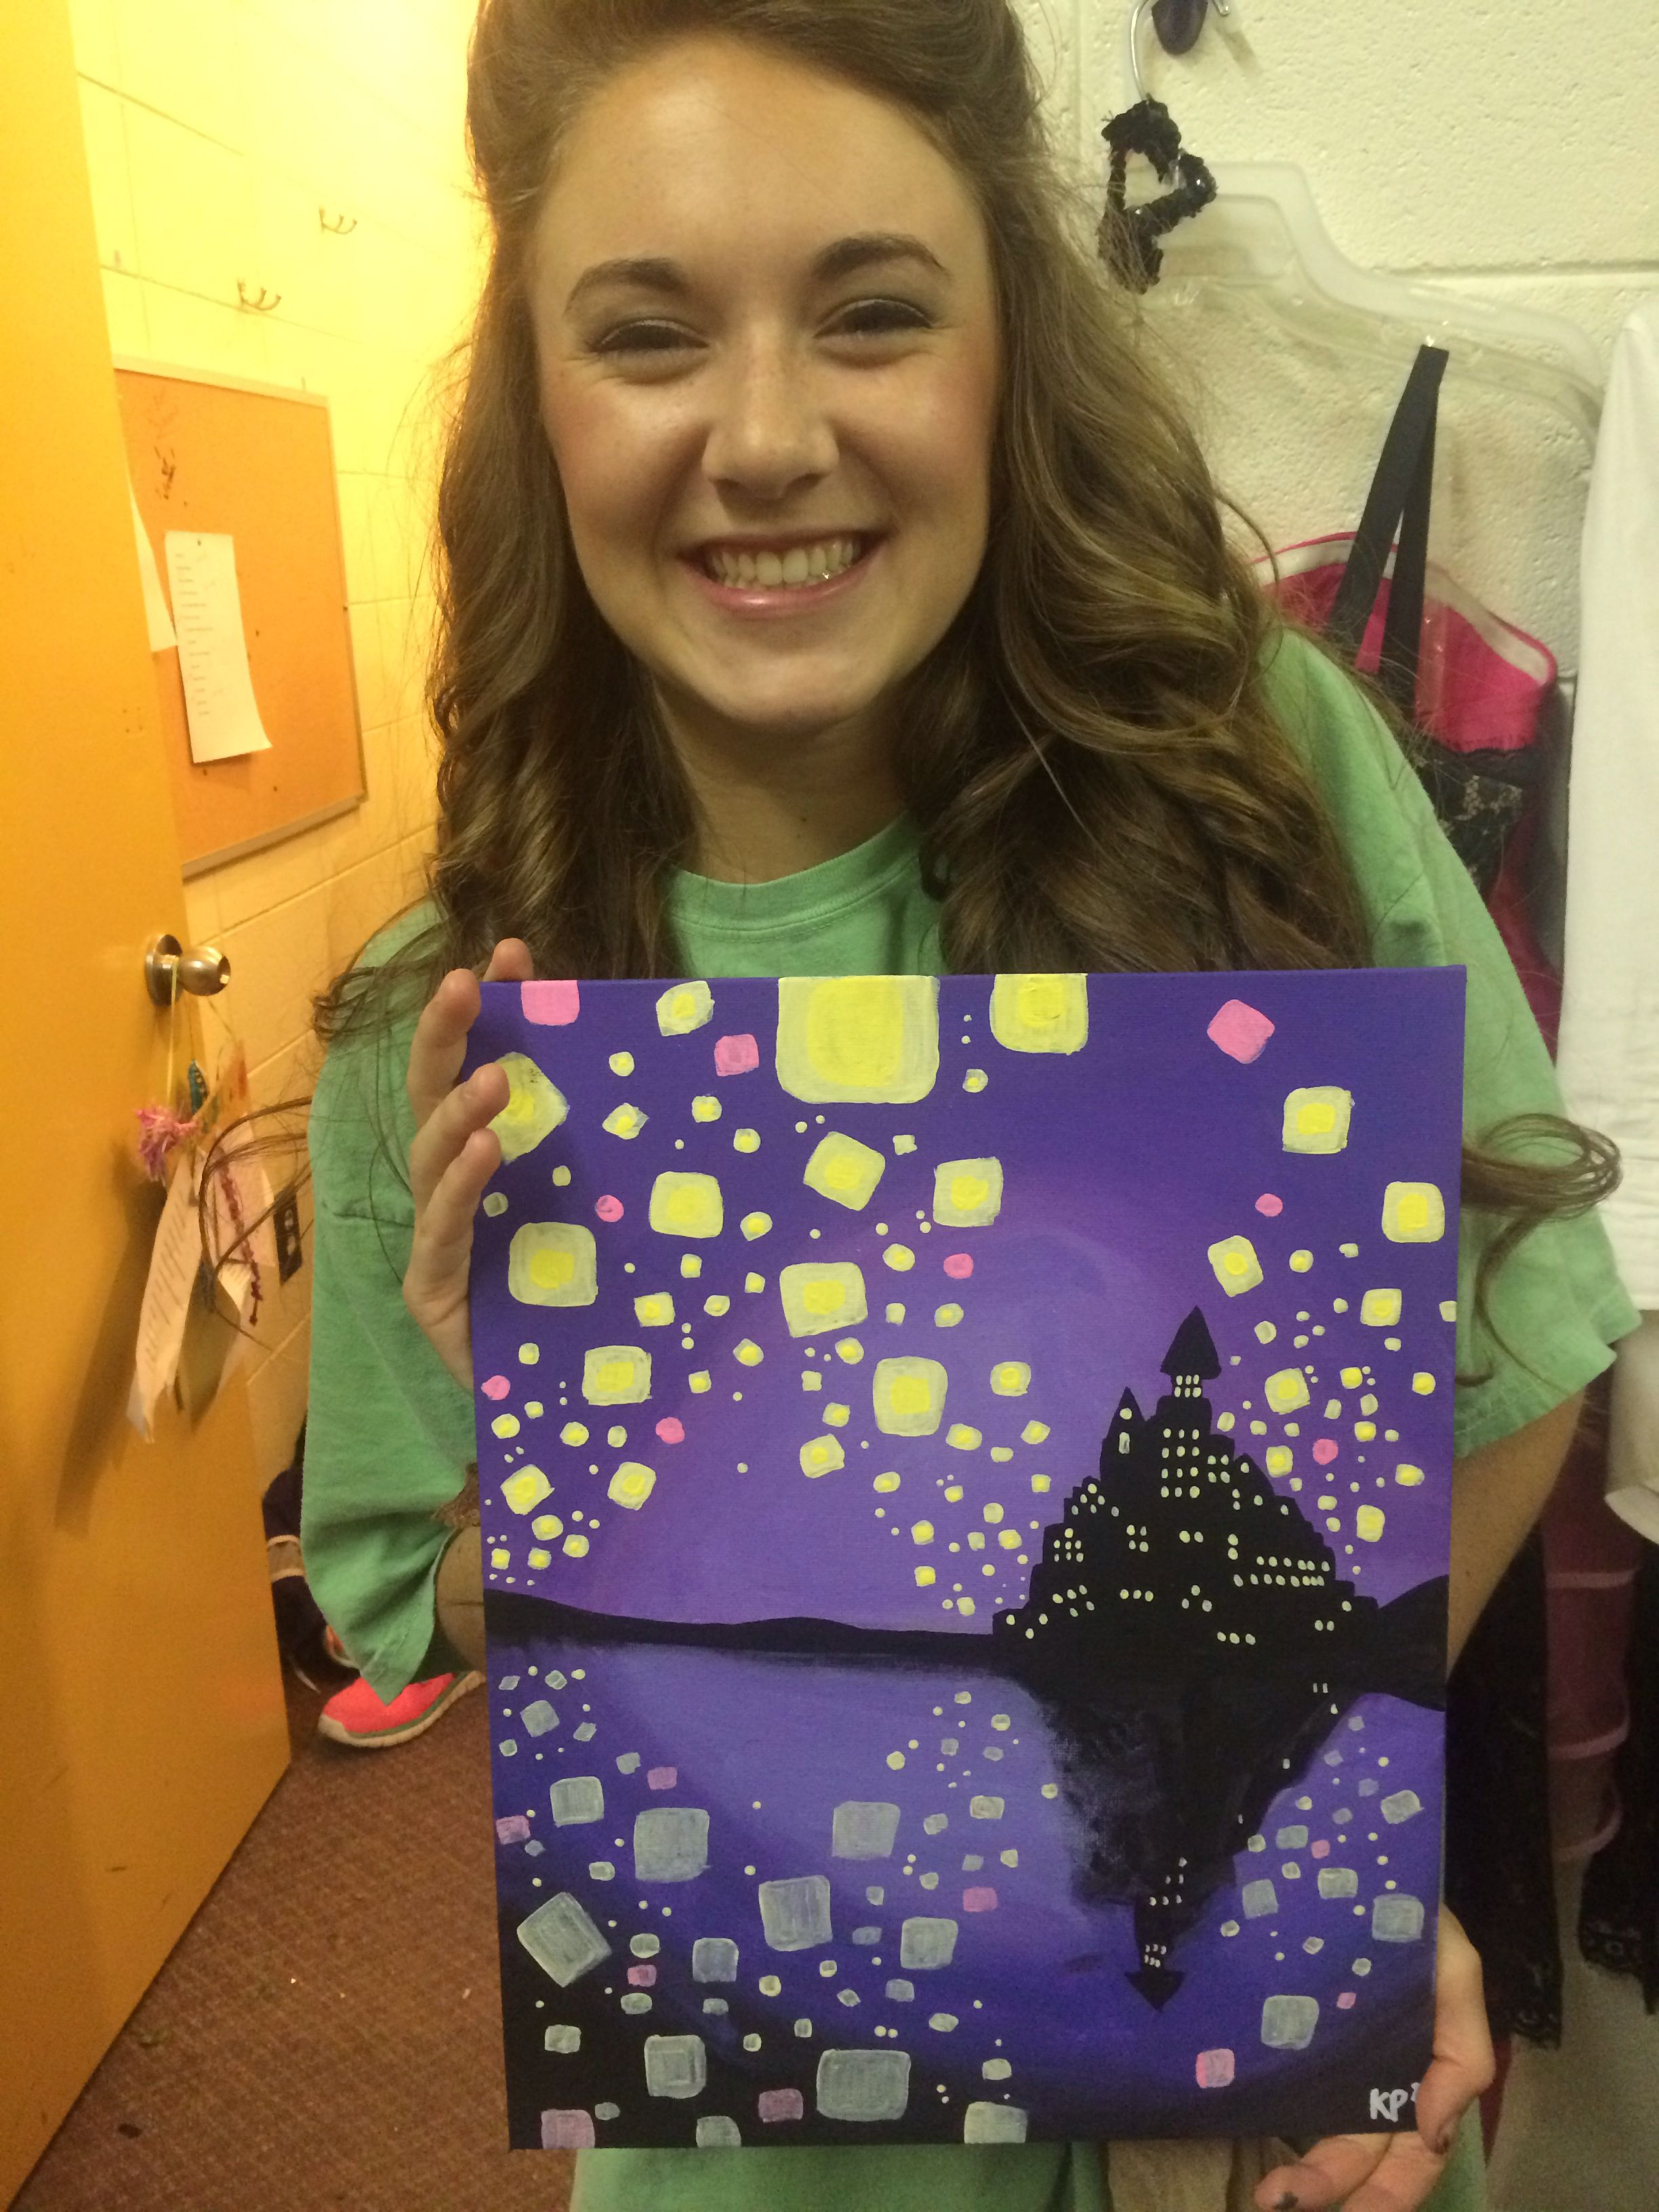 Disney Tangled Canvas For Graduation Gift